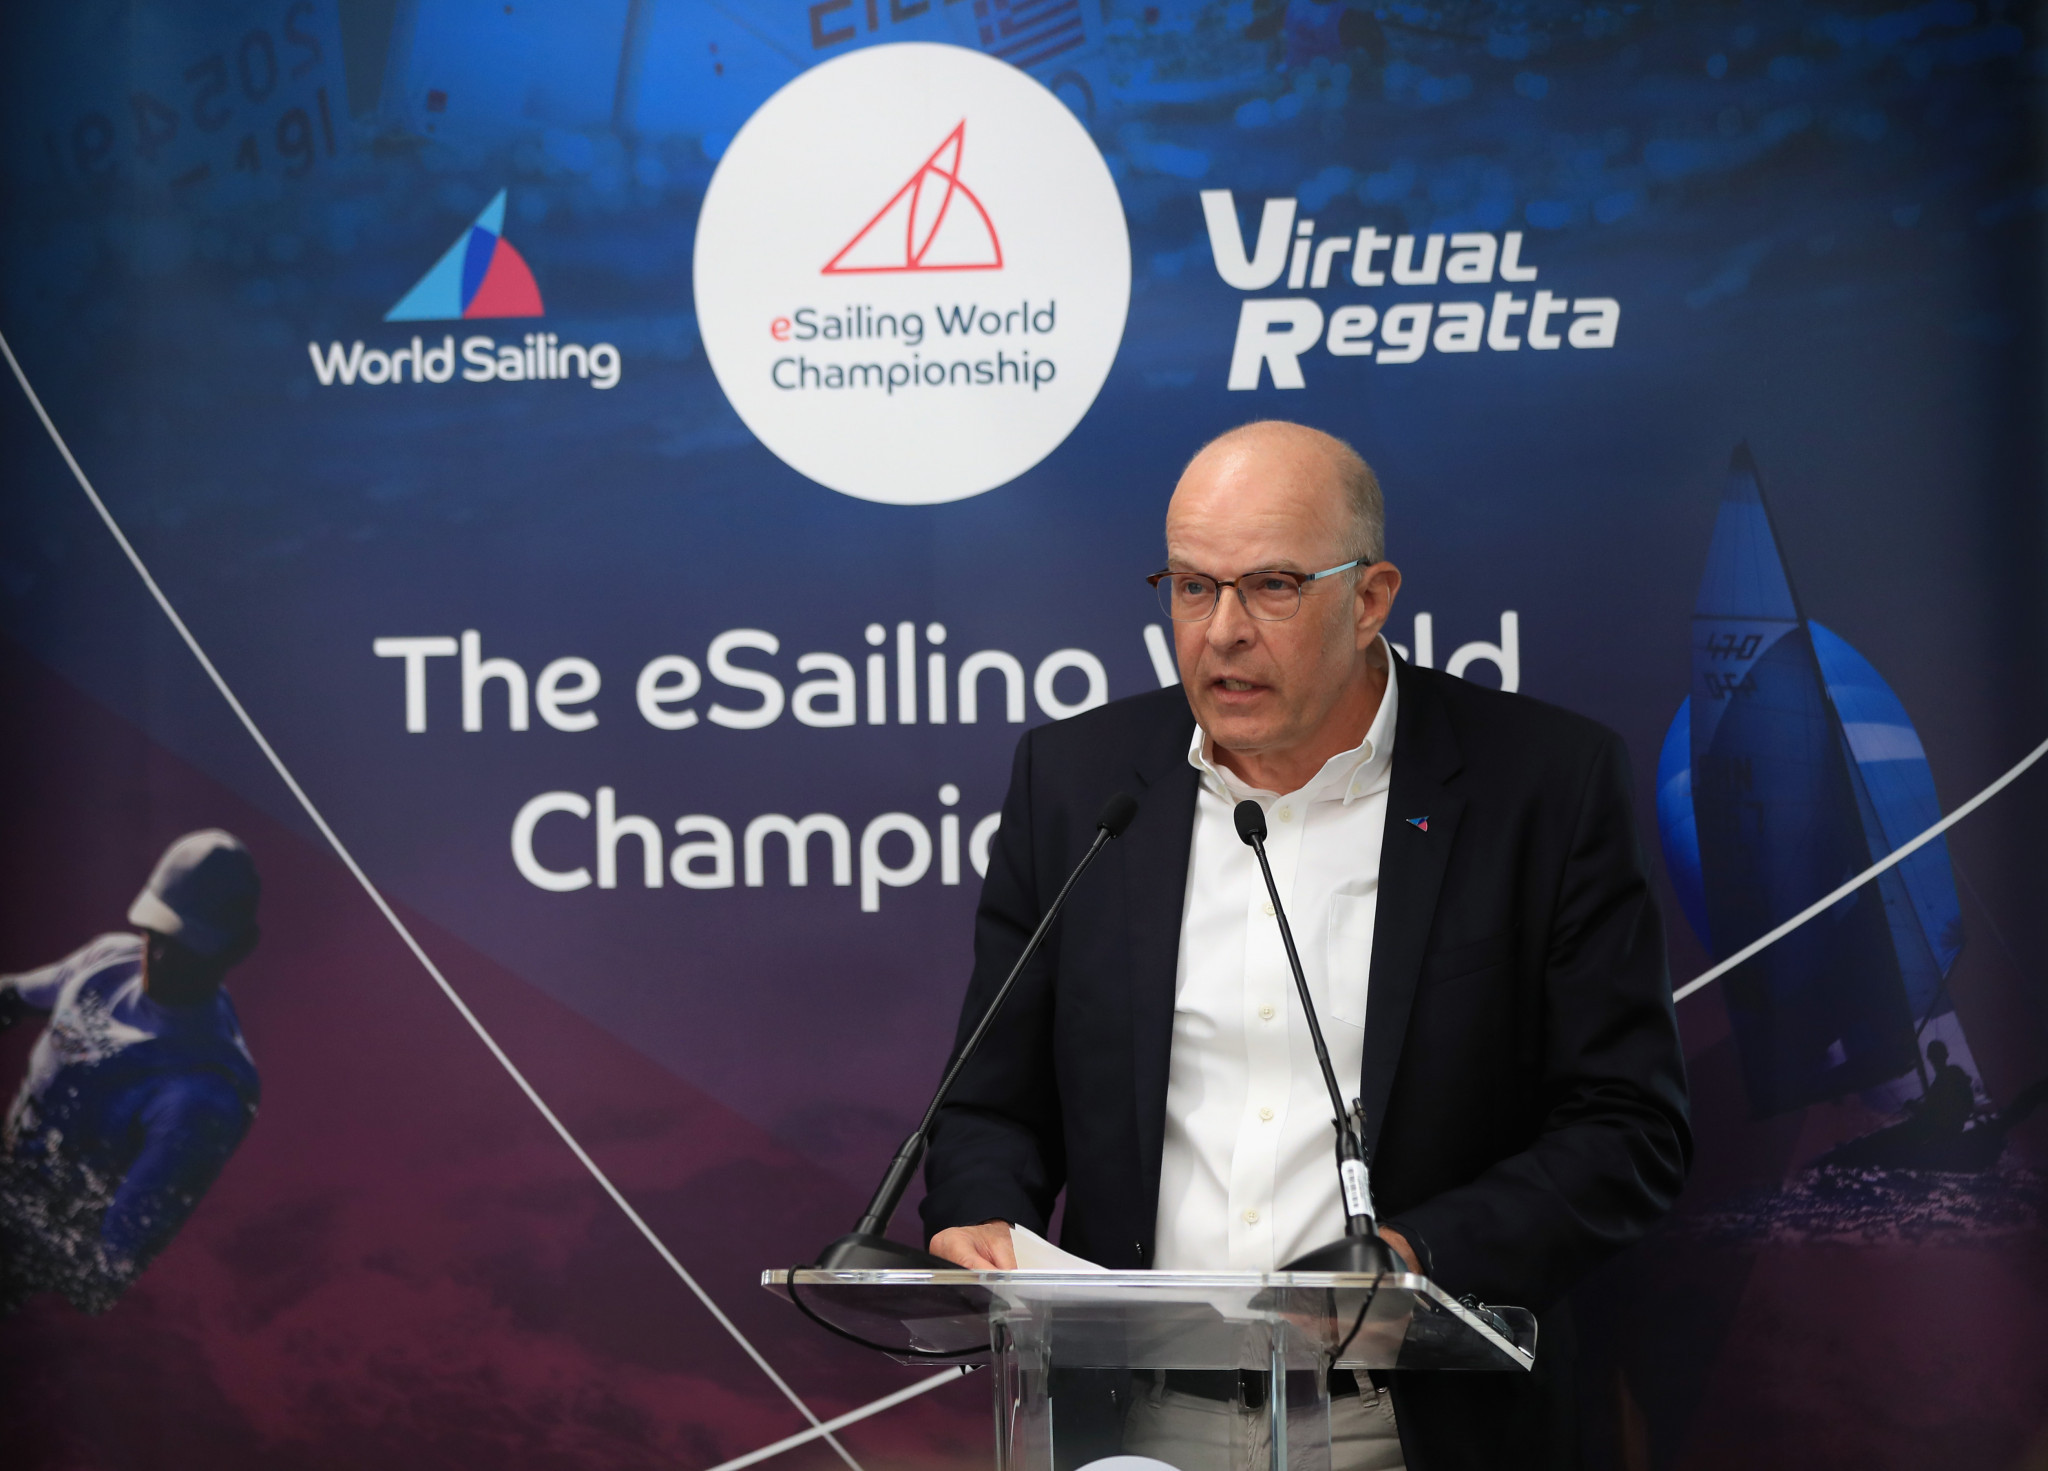 Nearly 10 per cent of World Sailing members may be ineligible to vote in knife-edge Presidential election